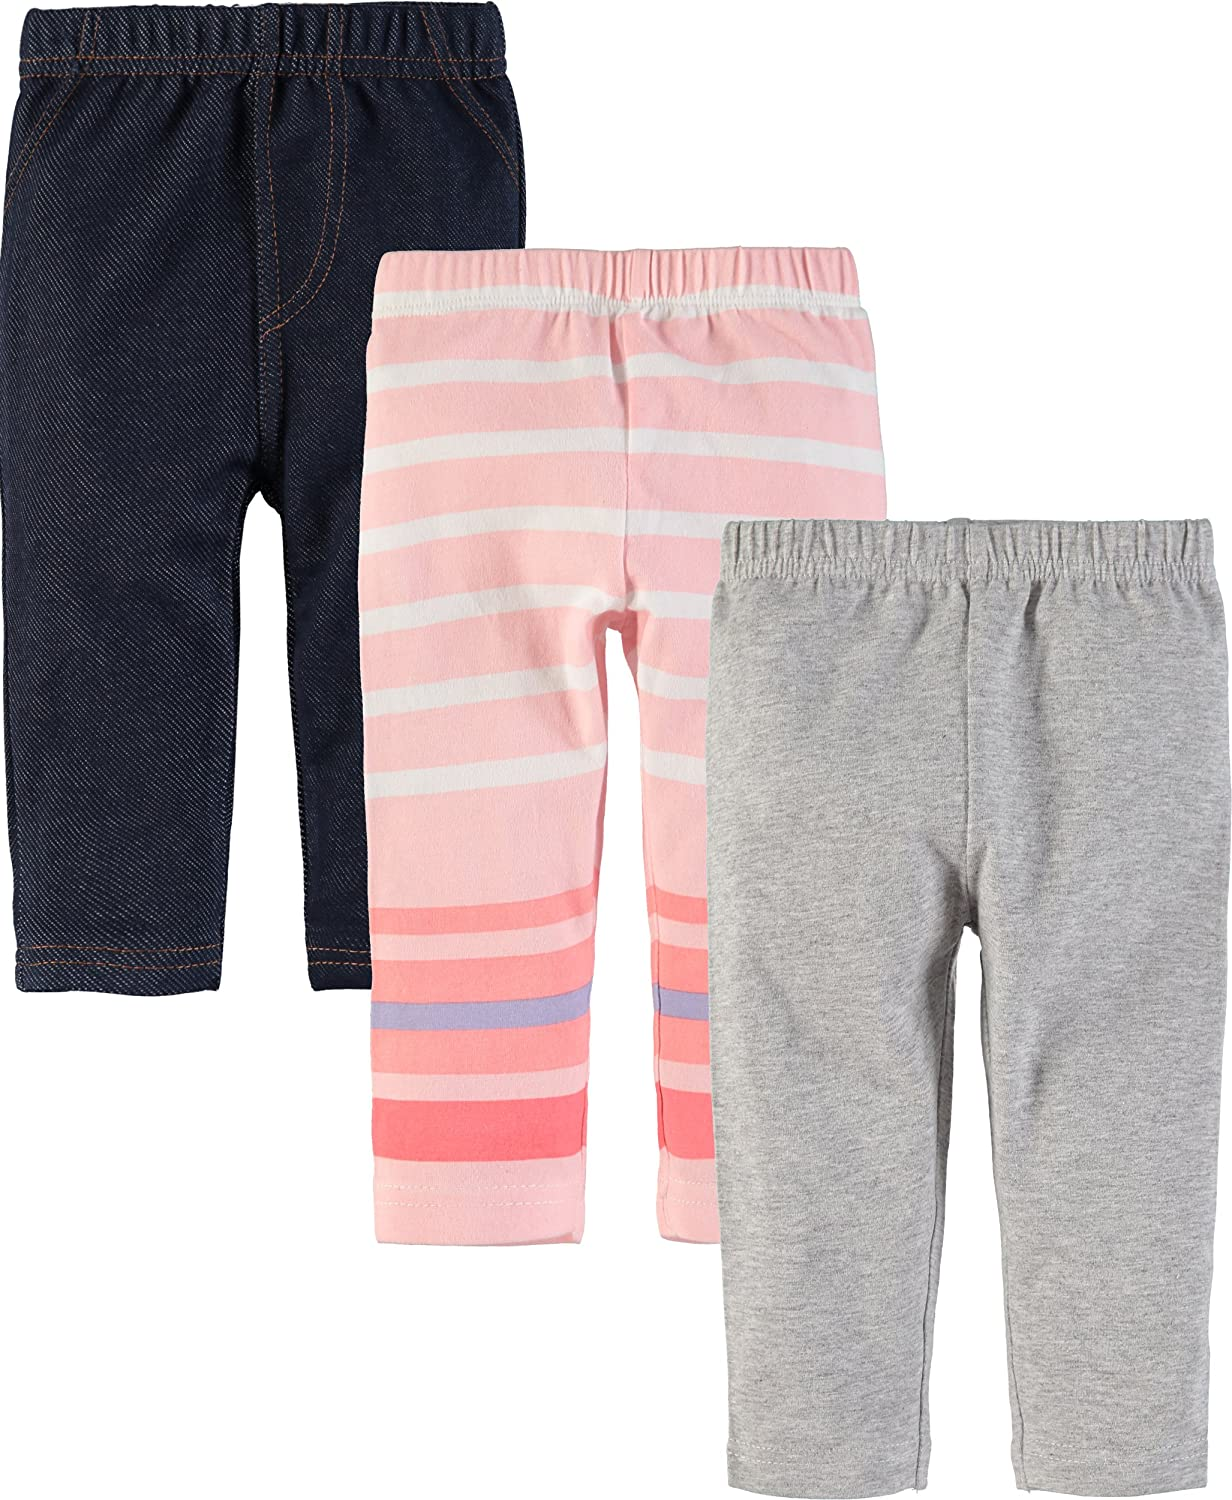 Wan-A-Beez Baby Boys' and Baby Girls' 3 Pack Pants